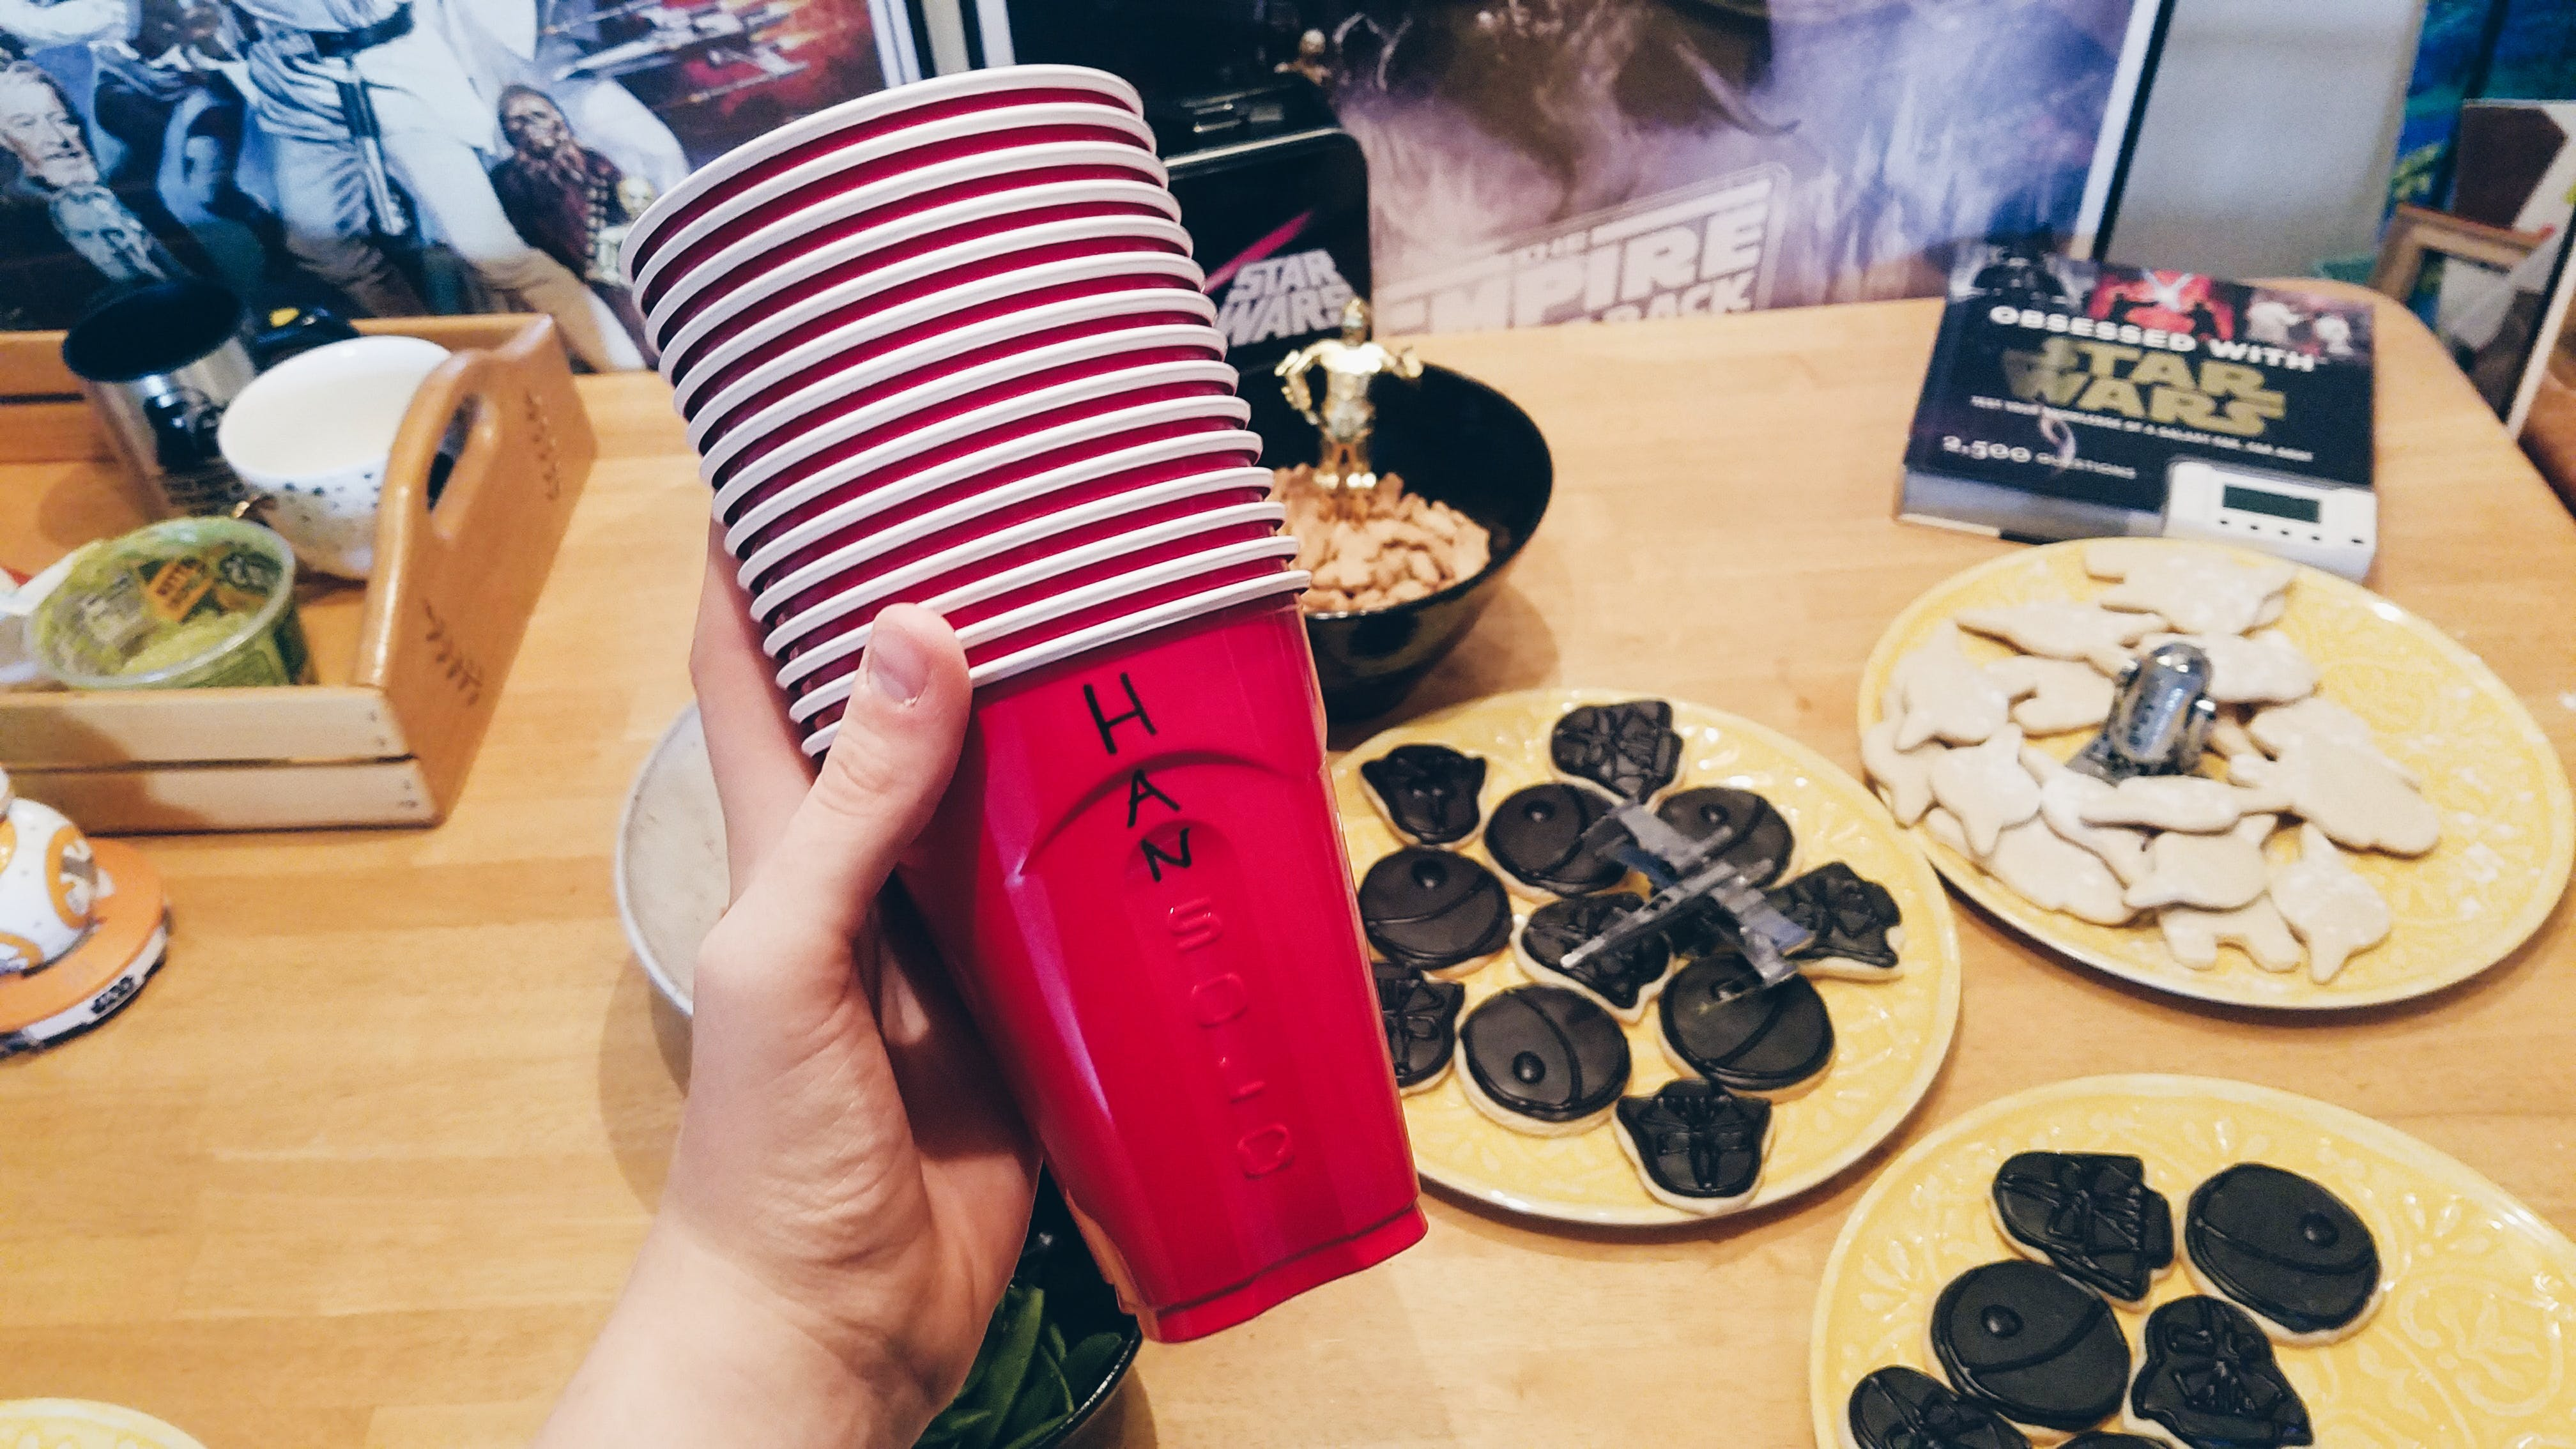 A stack of red solo cups with the word han written in sharpie before the word solo.